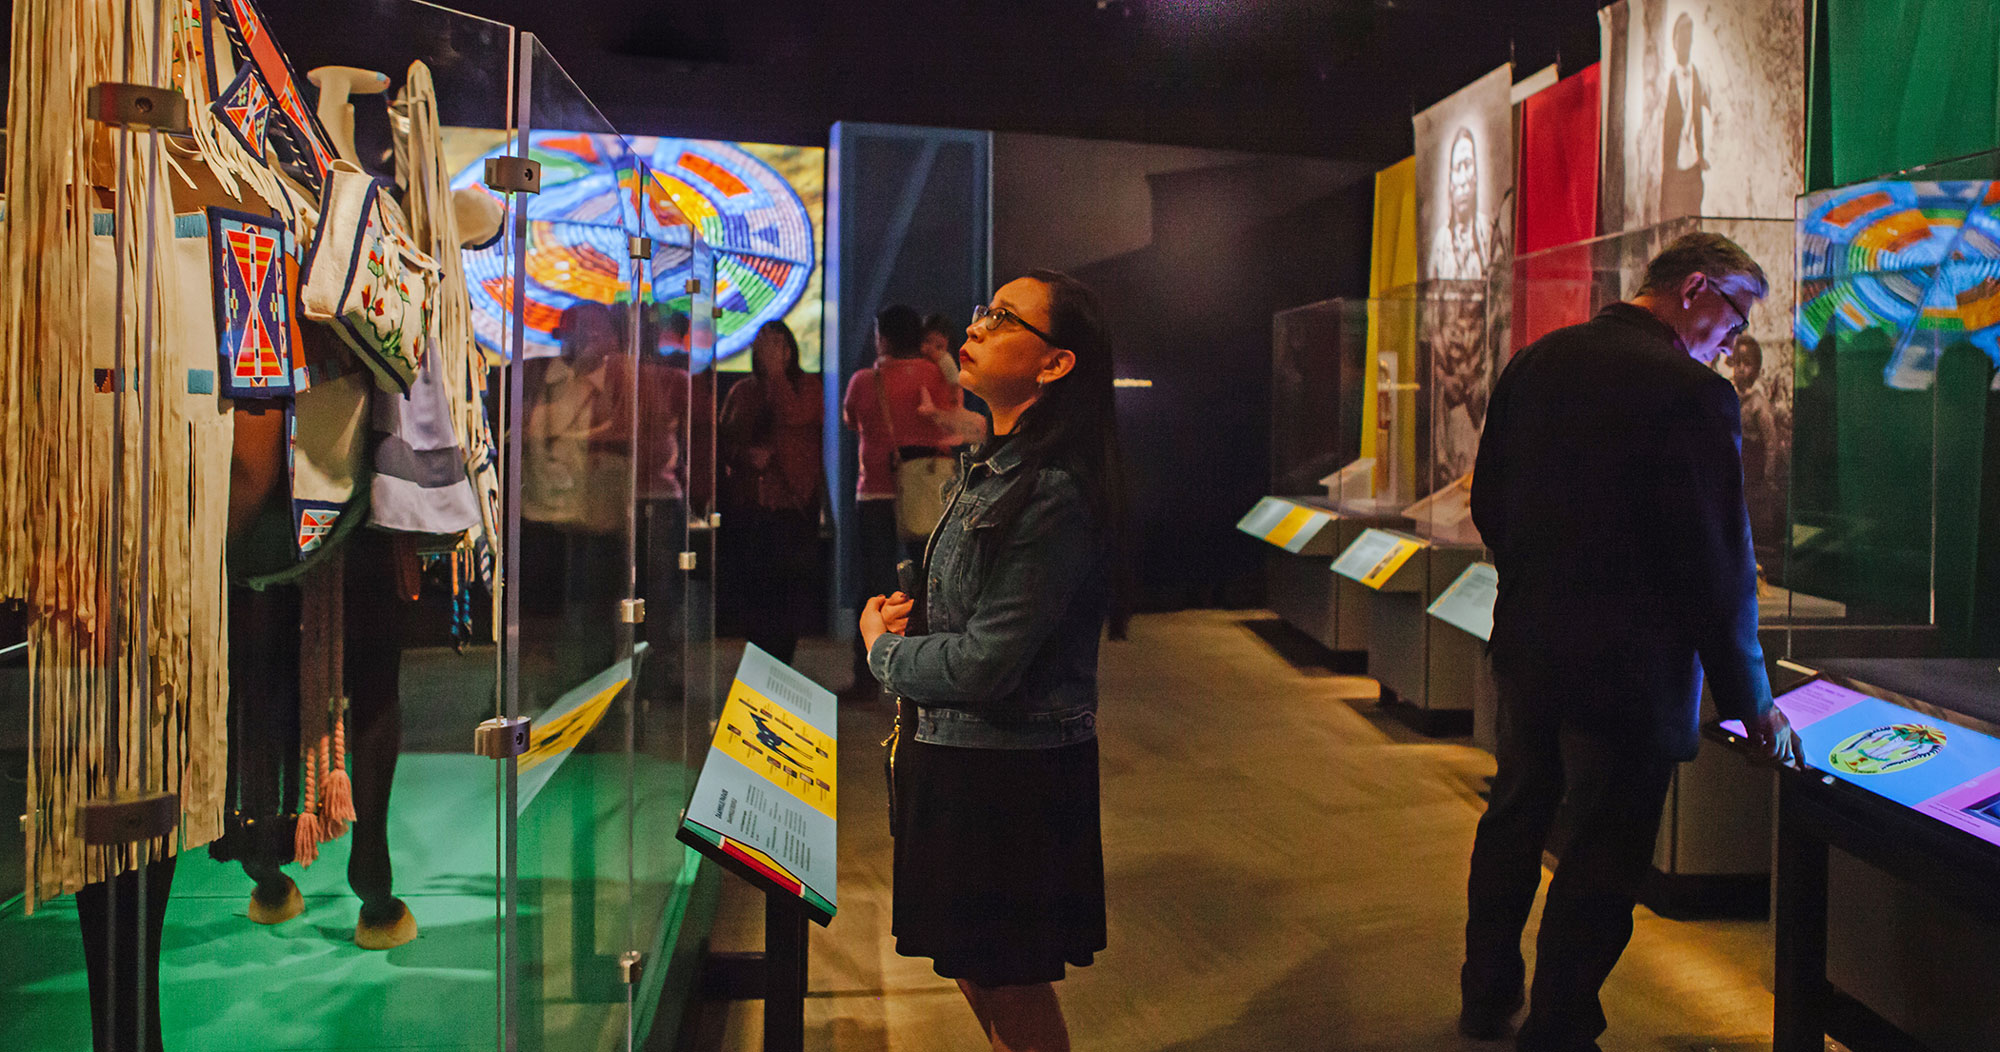 Josee Starr looks at regalia inside a display case in the exhibition Apsáalooke Women and Warriors. A screen in the background shows brightly colored beadwork.